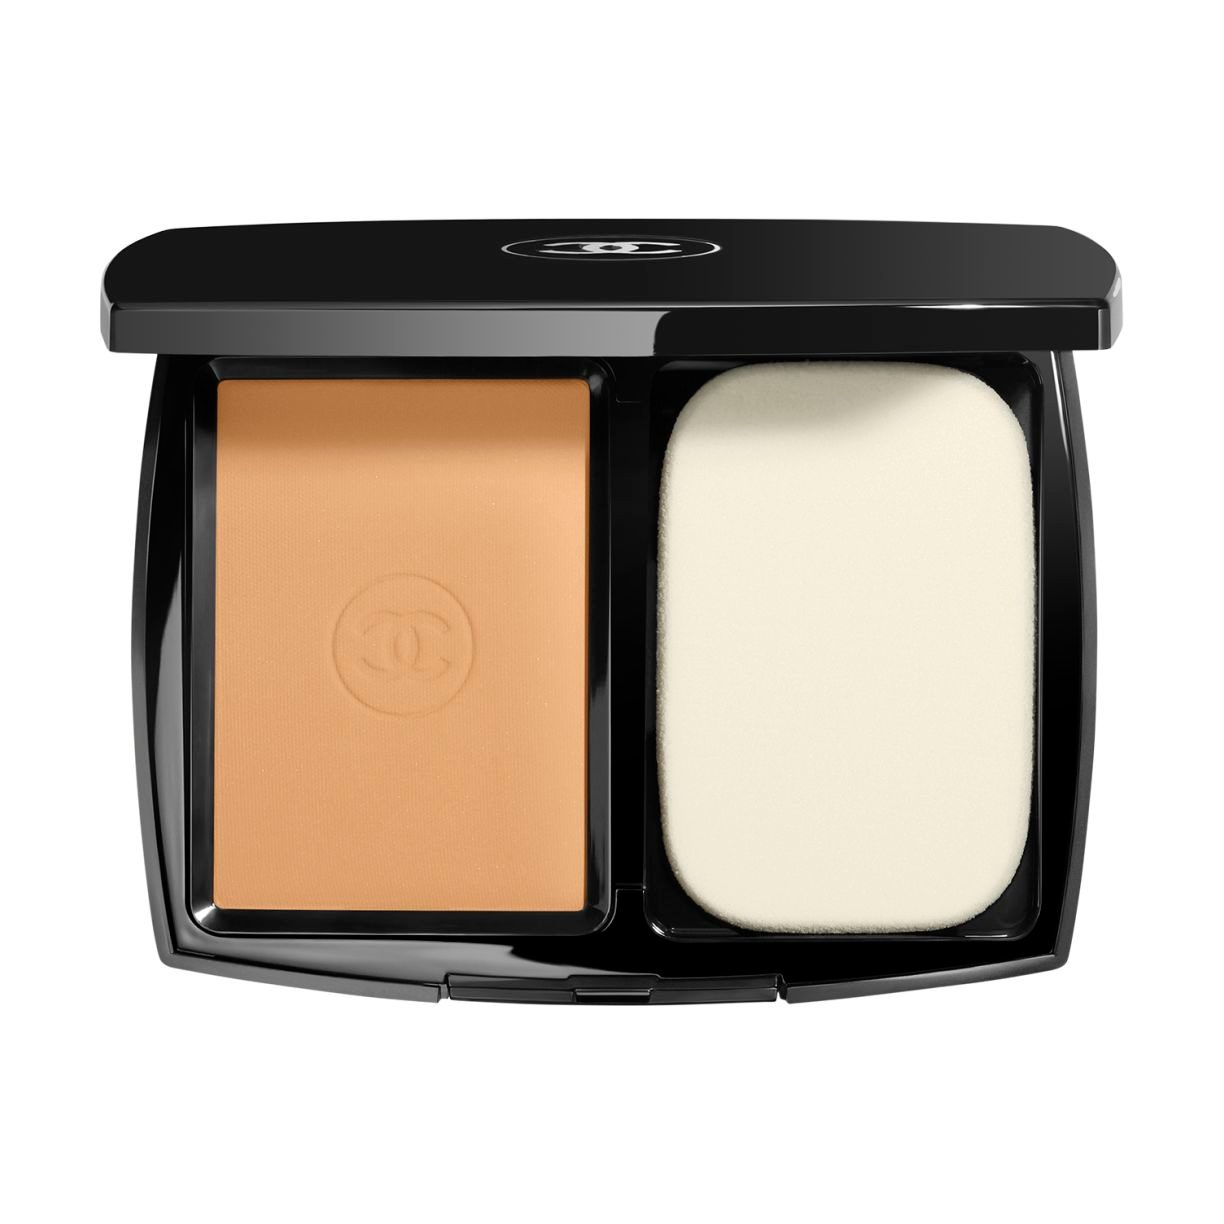 LE TEINT ULTRA TENUE ULTRAWEAR FLAWLESS COMPACT FOUNDATION 91 CARAMEL 13G